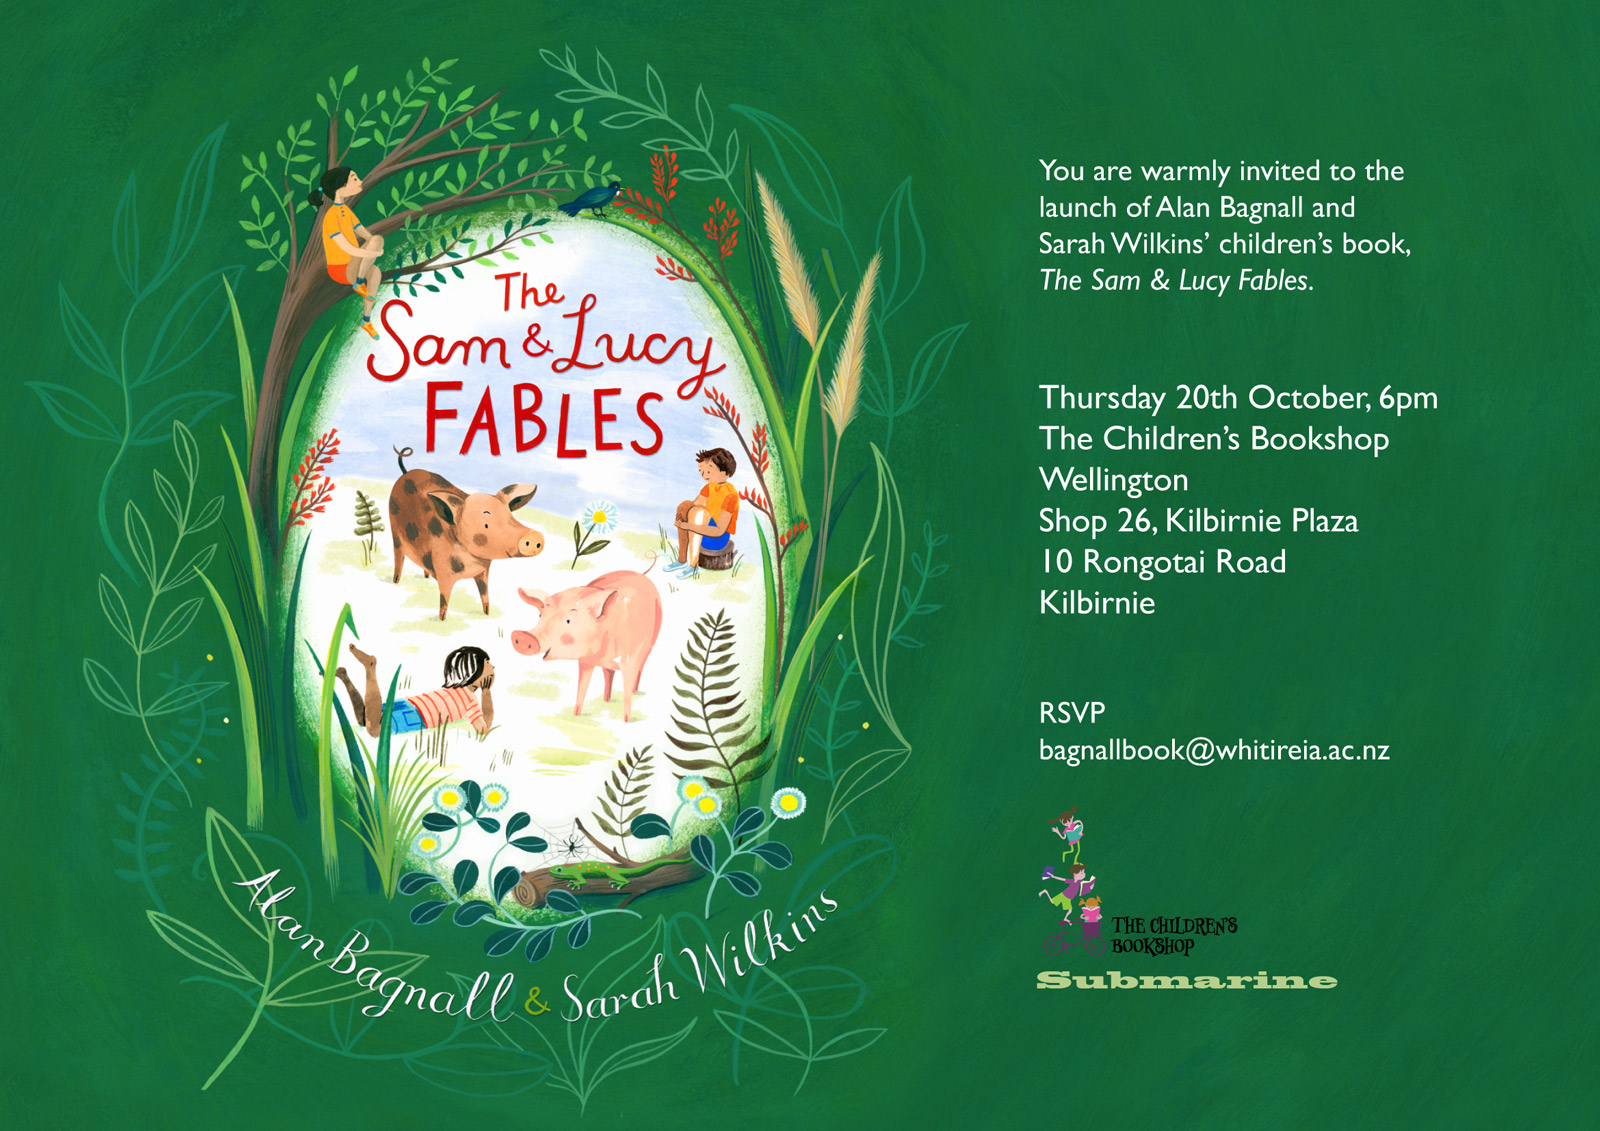 The Sam & Lucy Fables - Book launch invitation